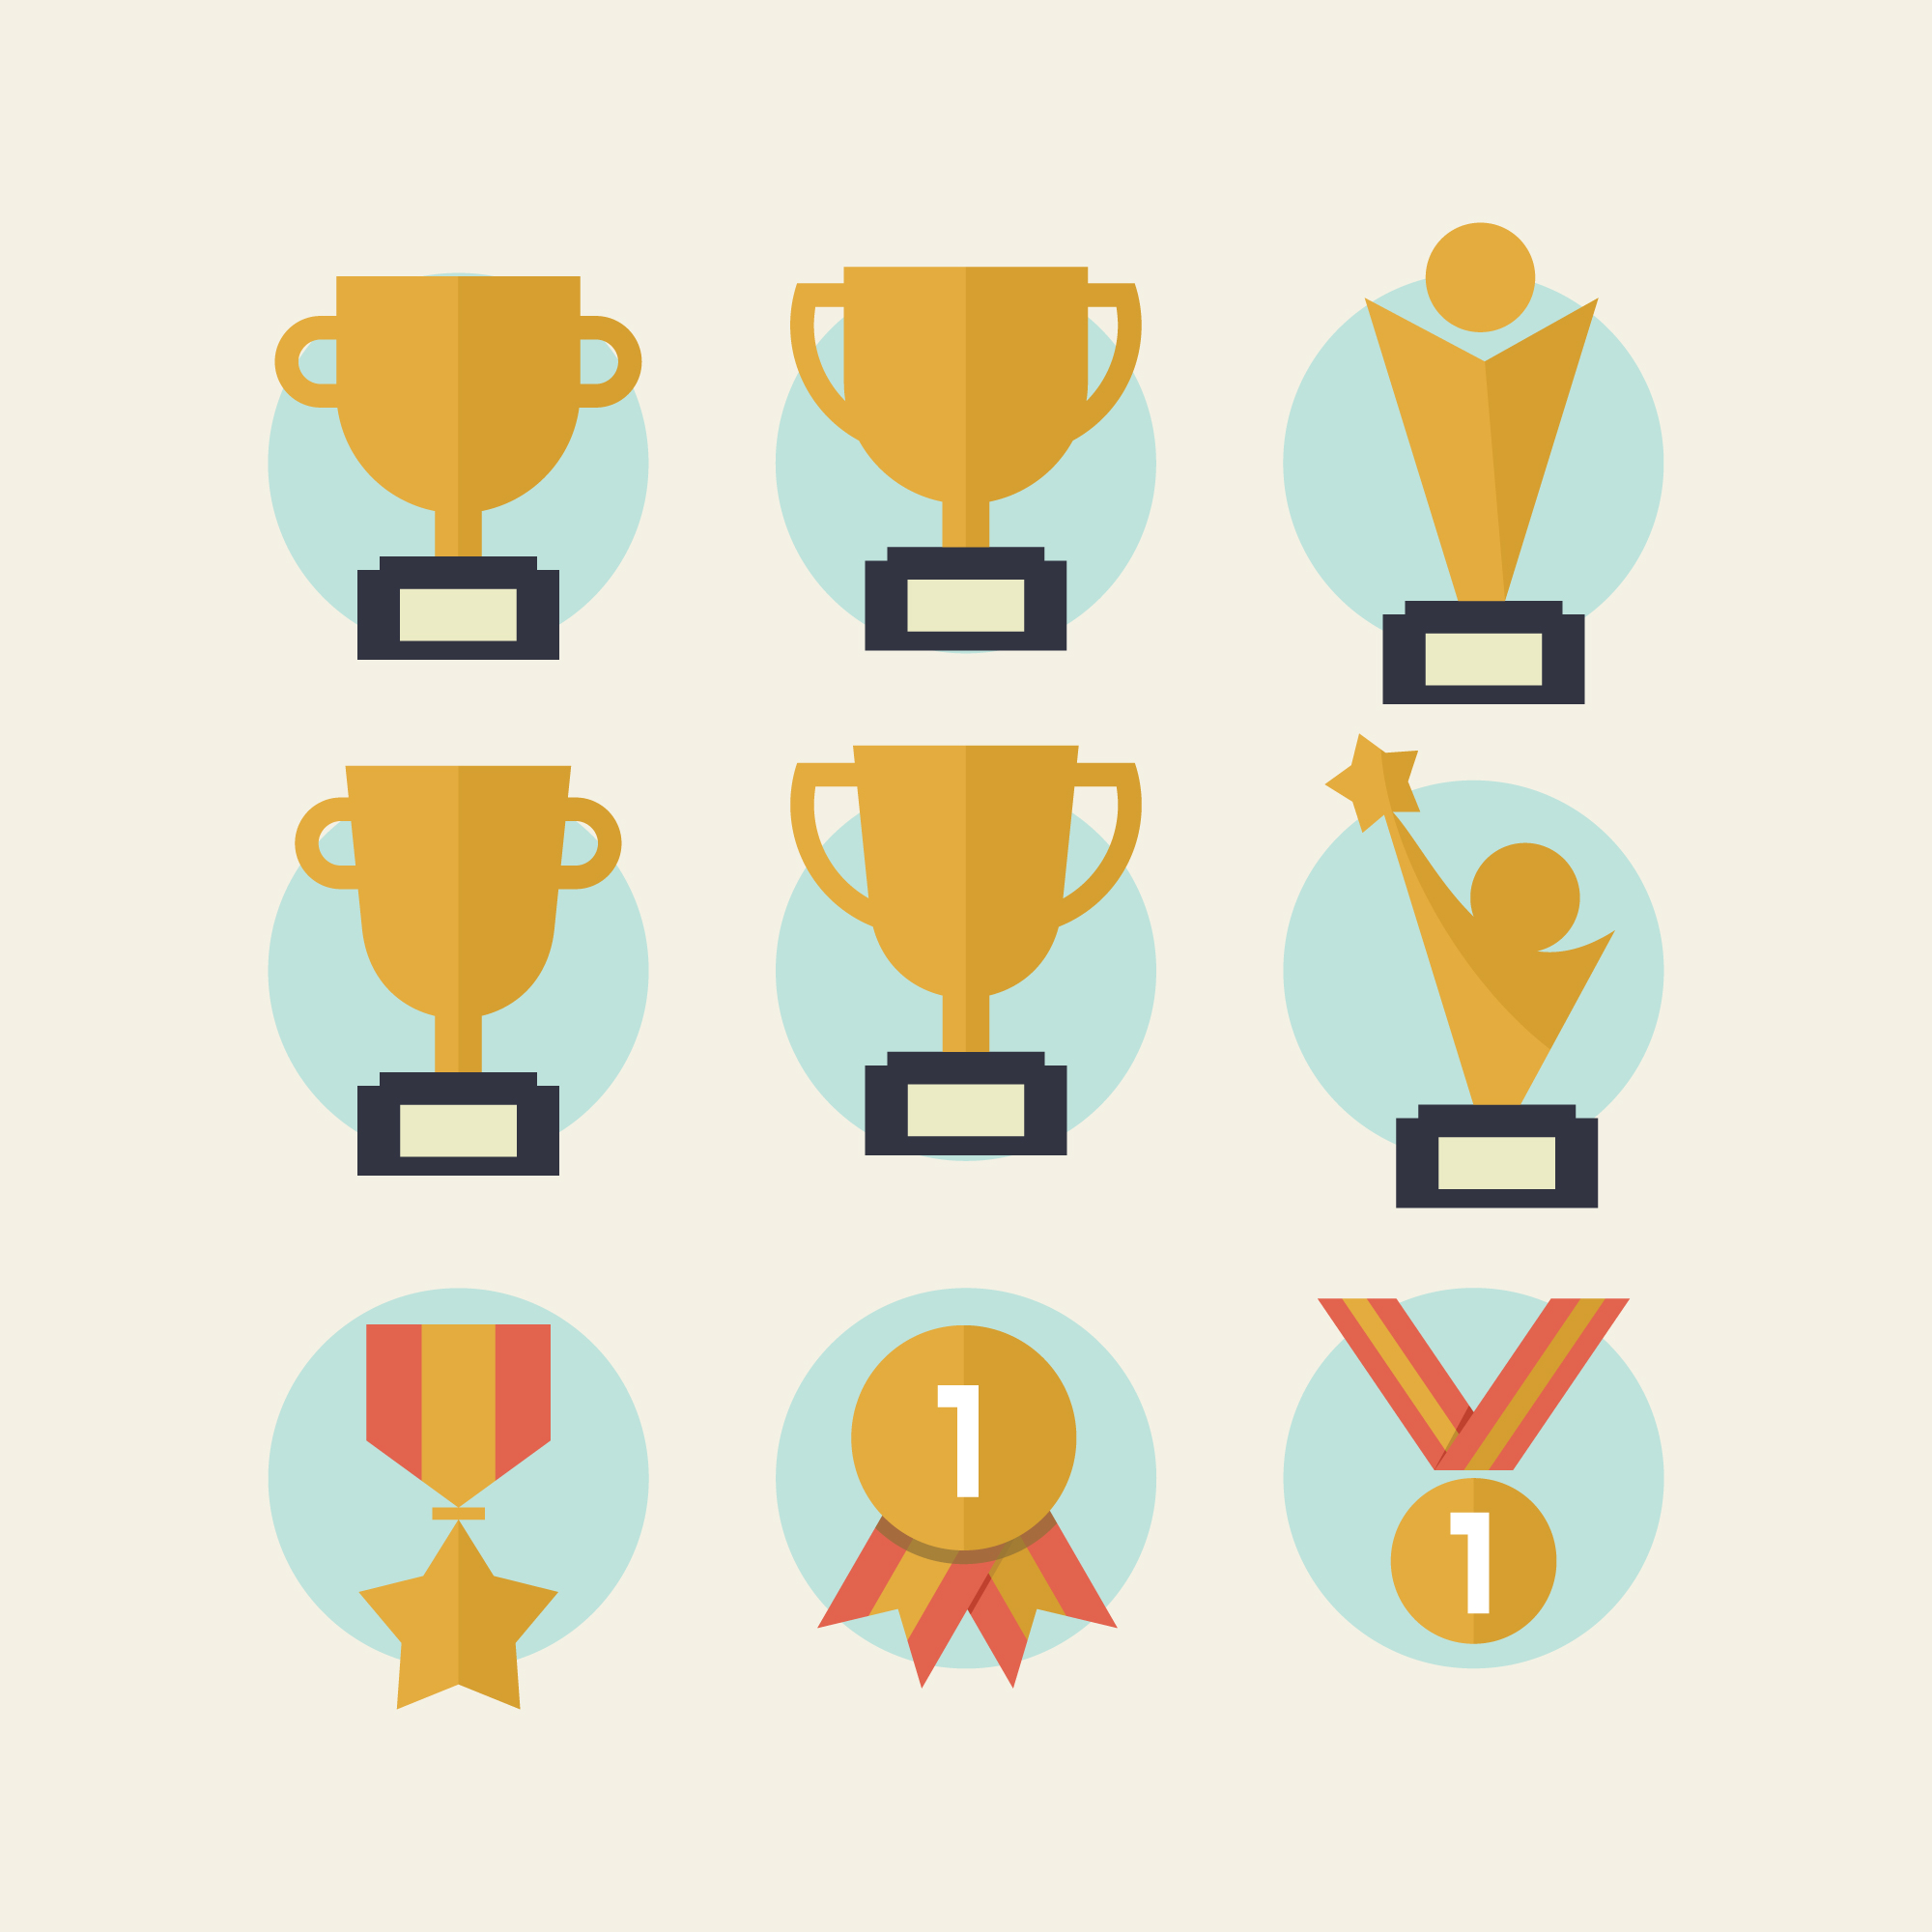 Trophy and medals icon design